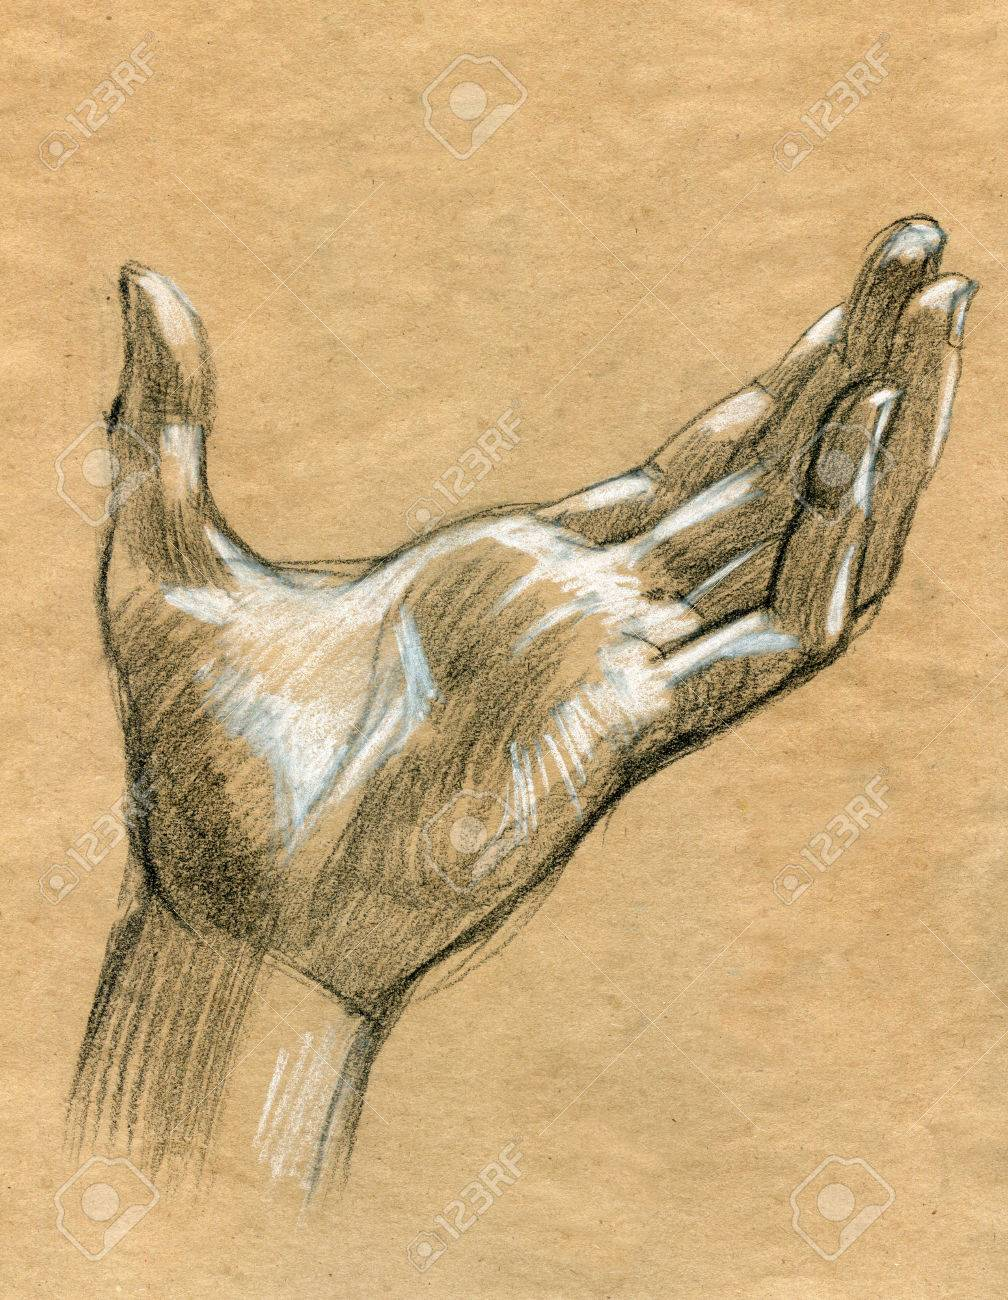 1008x1300 Praying Hands Drawing Illustration Realistic Sketch Stock Photo